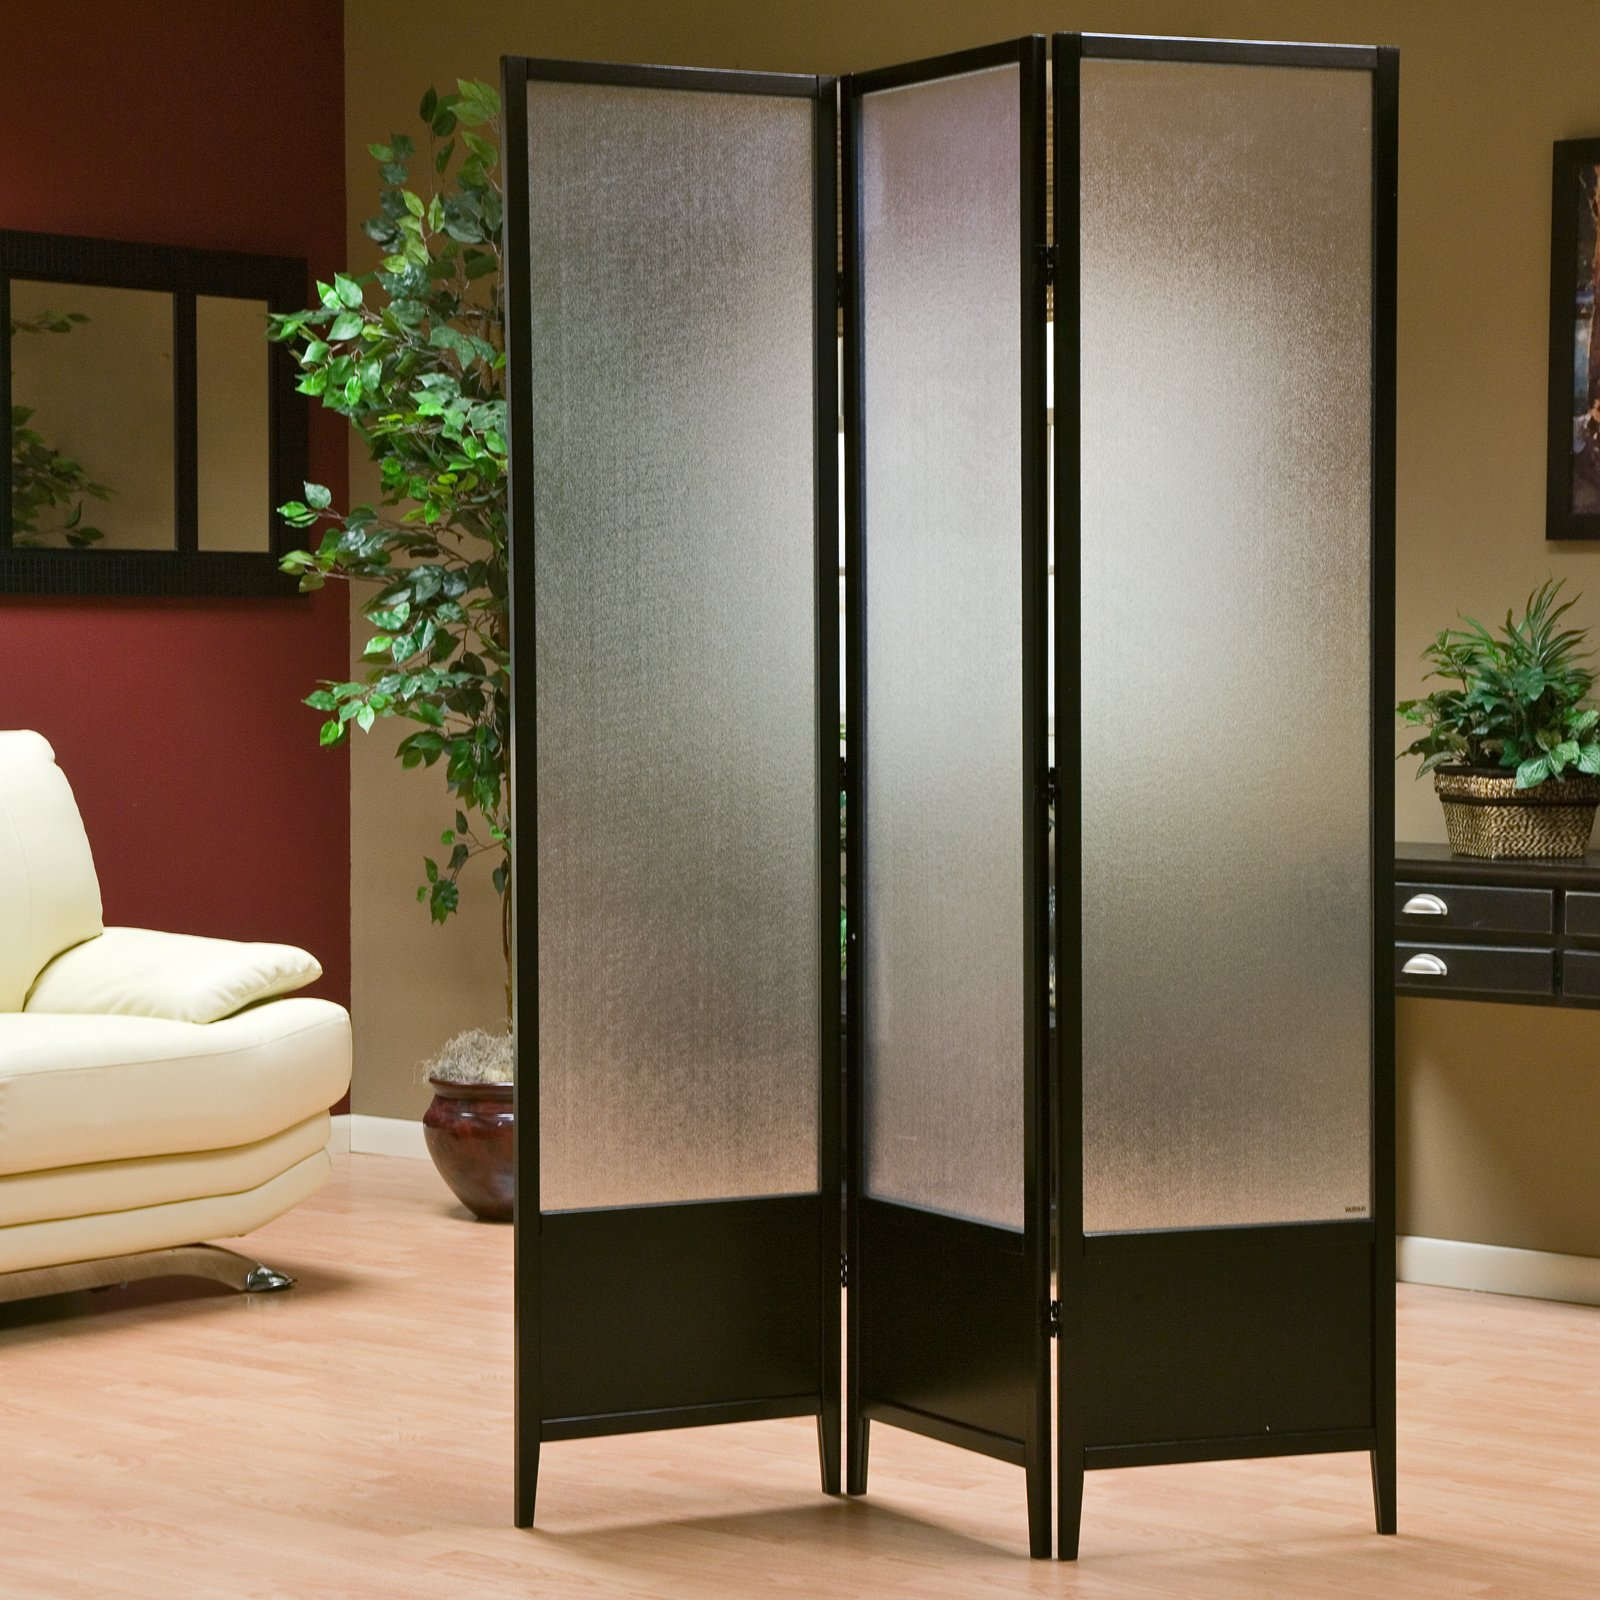 folding-room-divider-screens-with-wooden-floor-and-cozy-sofa-for-home-decoration-ideas-photo-screen-room-divider-room-dividers-lowes-door-dividers-hanging-screen-room-divider-hanging-room-dividers-on